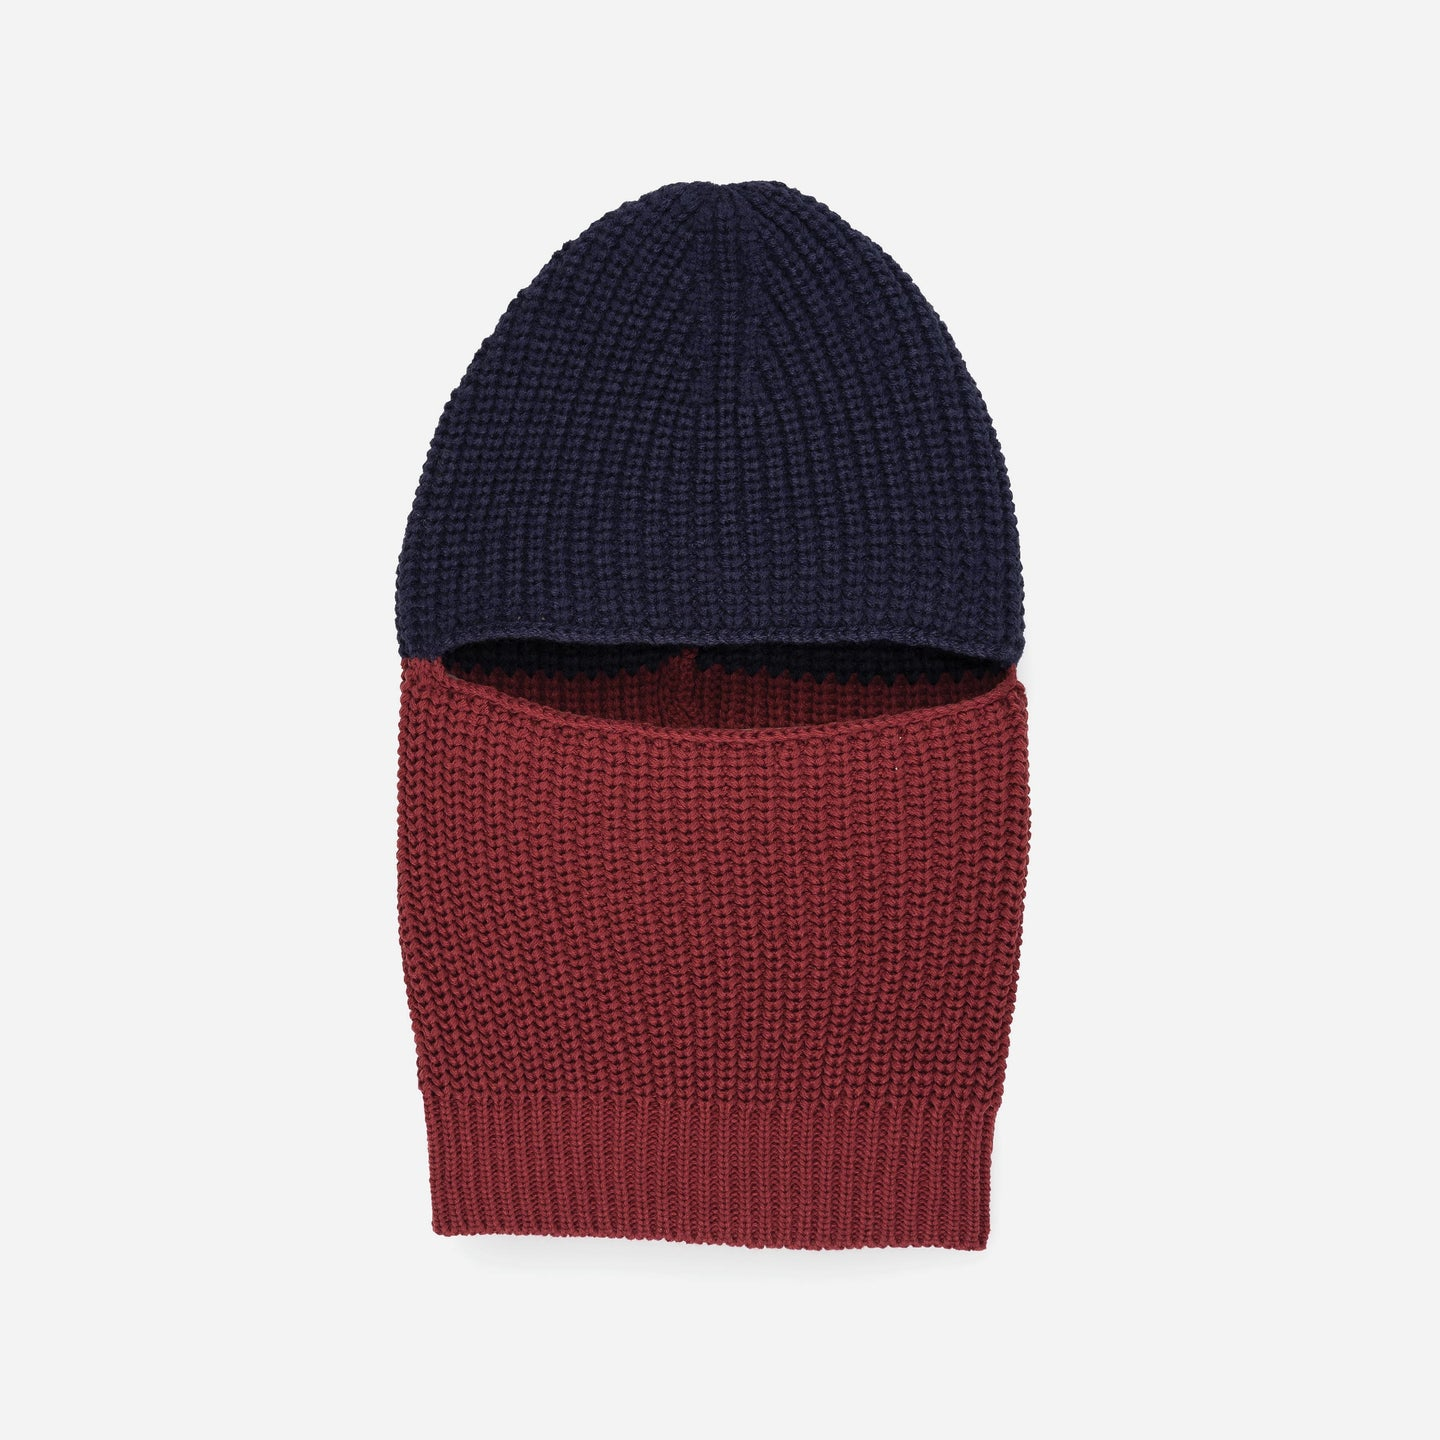 Soft knit balaclava colorblock gaiter